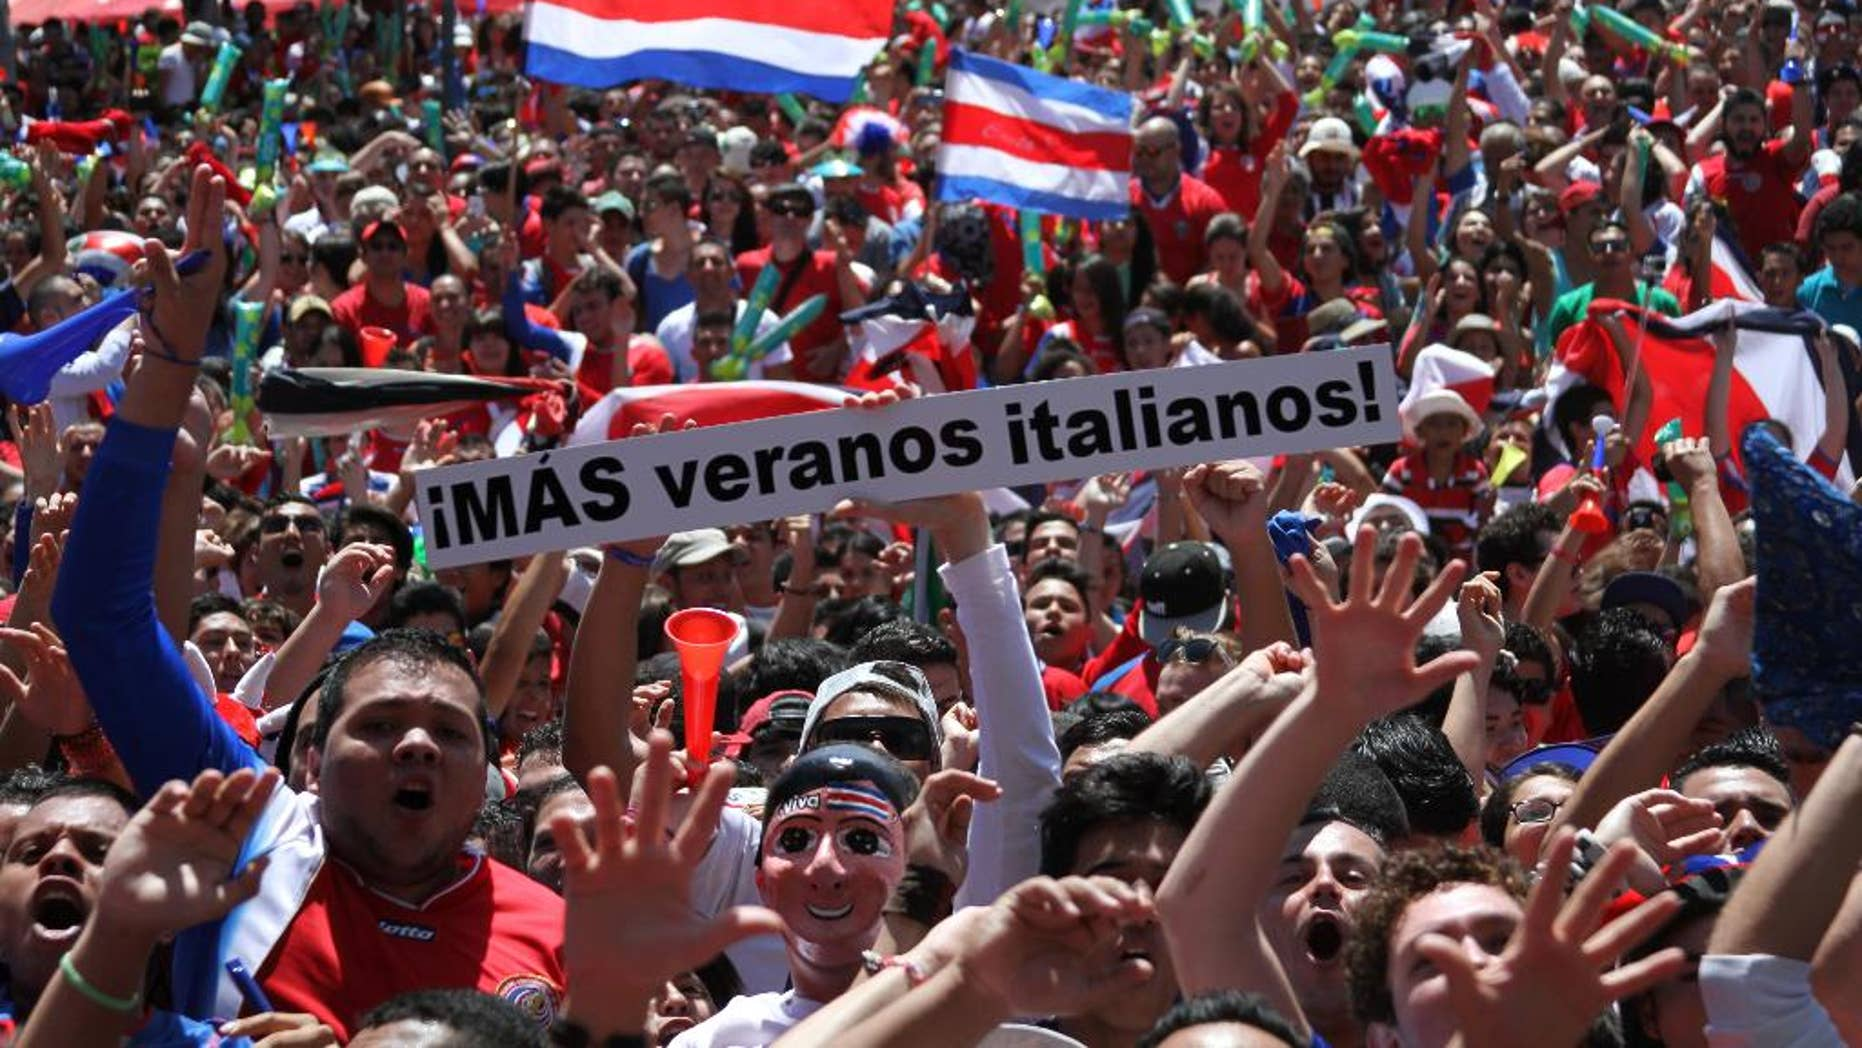 """Costa Rica soccer fans celebrate after their team's World Cup victory over Italy in San Jose, Costa Rica, Friday, June 20, 2014. Costa Rica won 1-0. The sign reads in Spanish """"More Italian summers!"""" (AP Photo/Enrique Martinez)"""